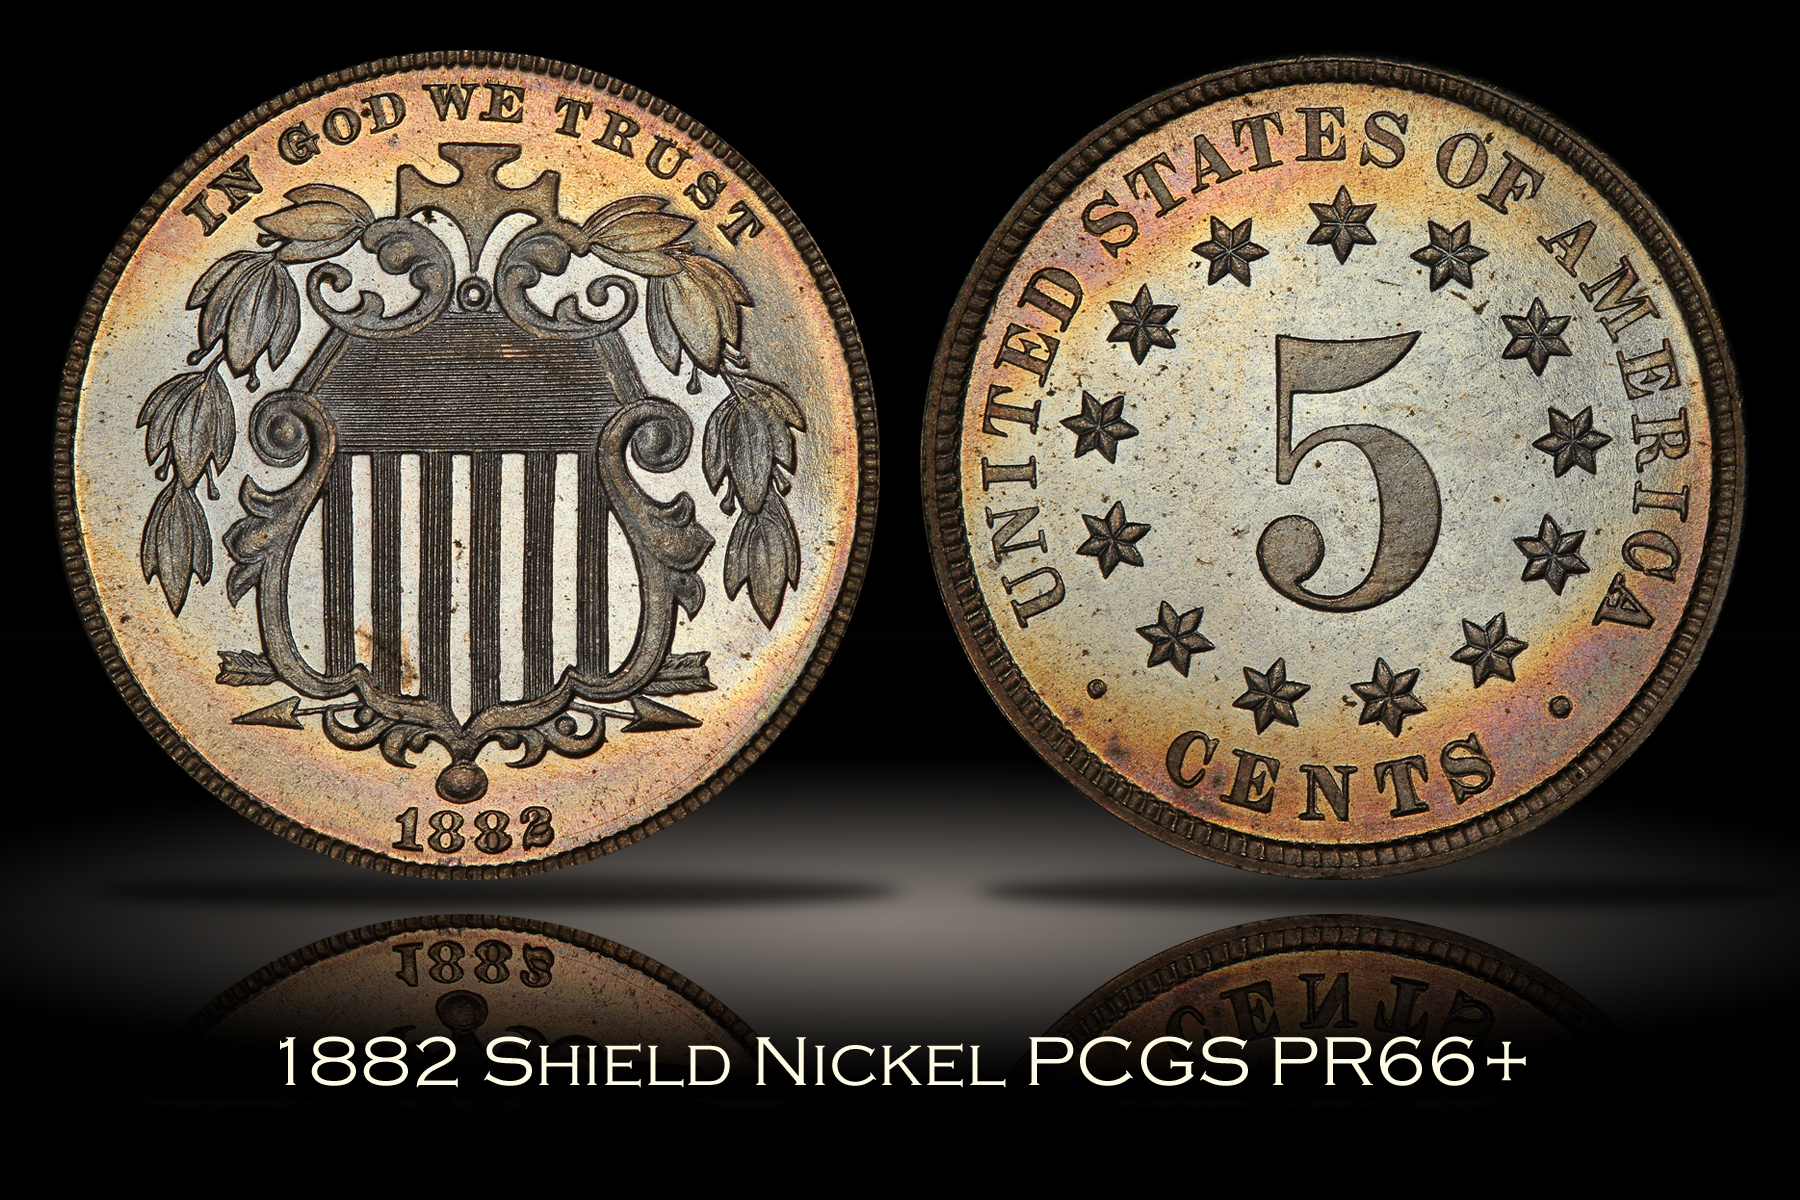 1882 Proof Shield Nickel PCGS PR66+